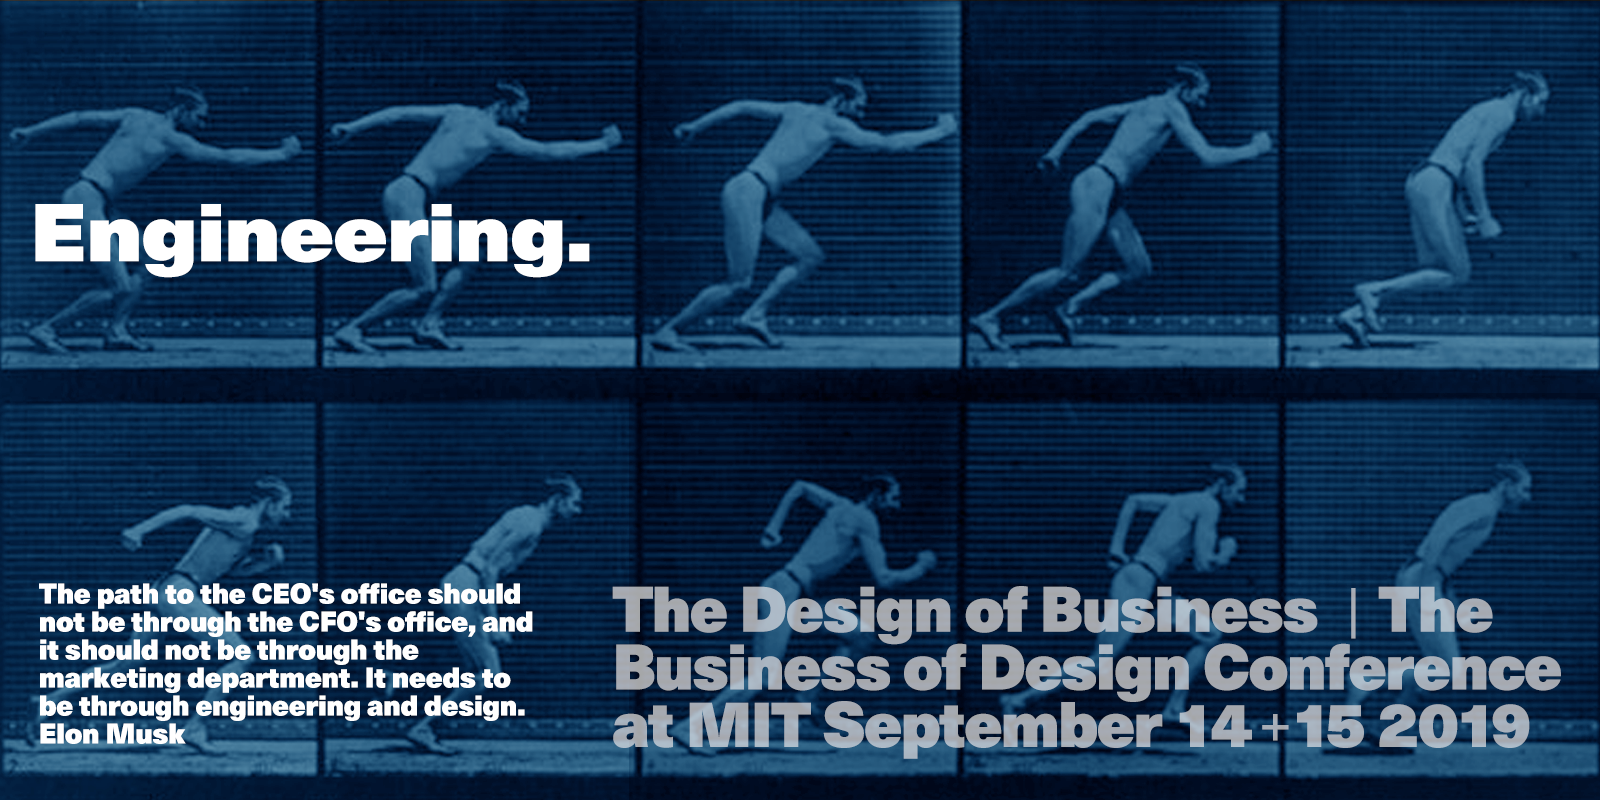 2019 The Design of Business | The Business of Design Conference at MIT